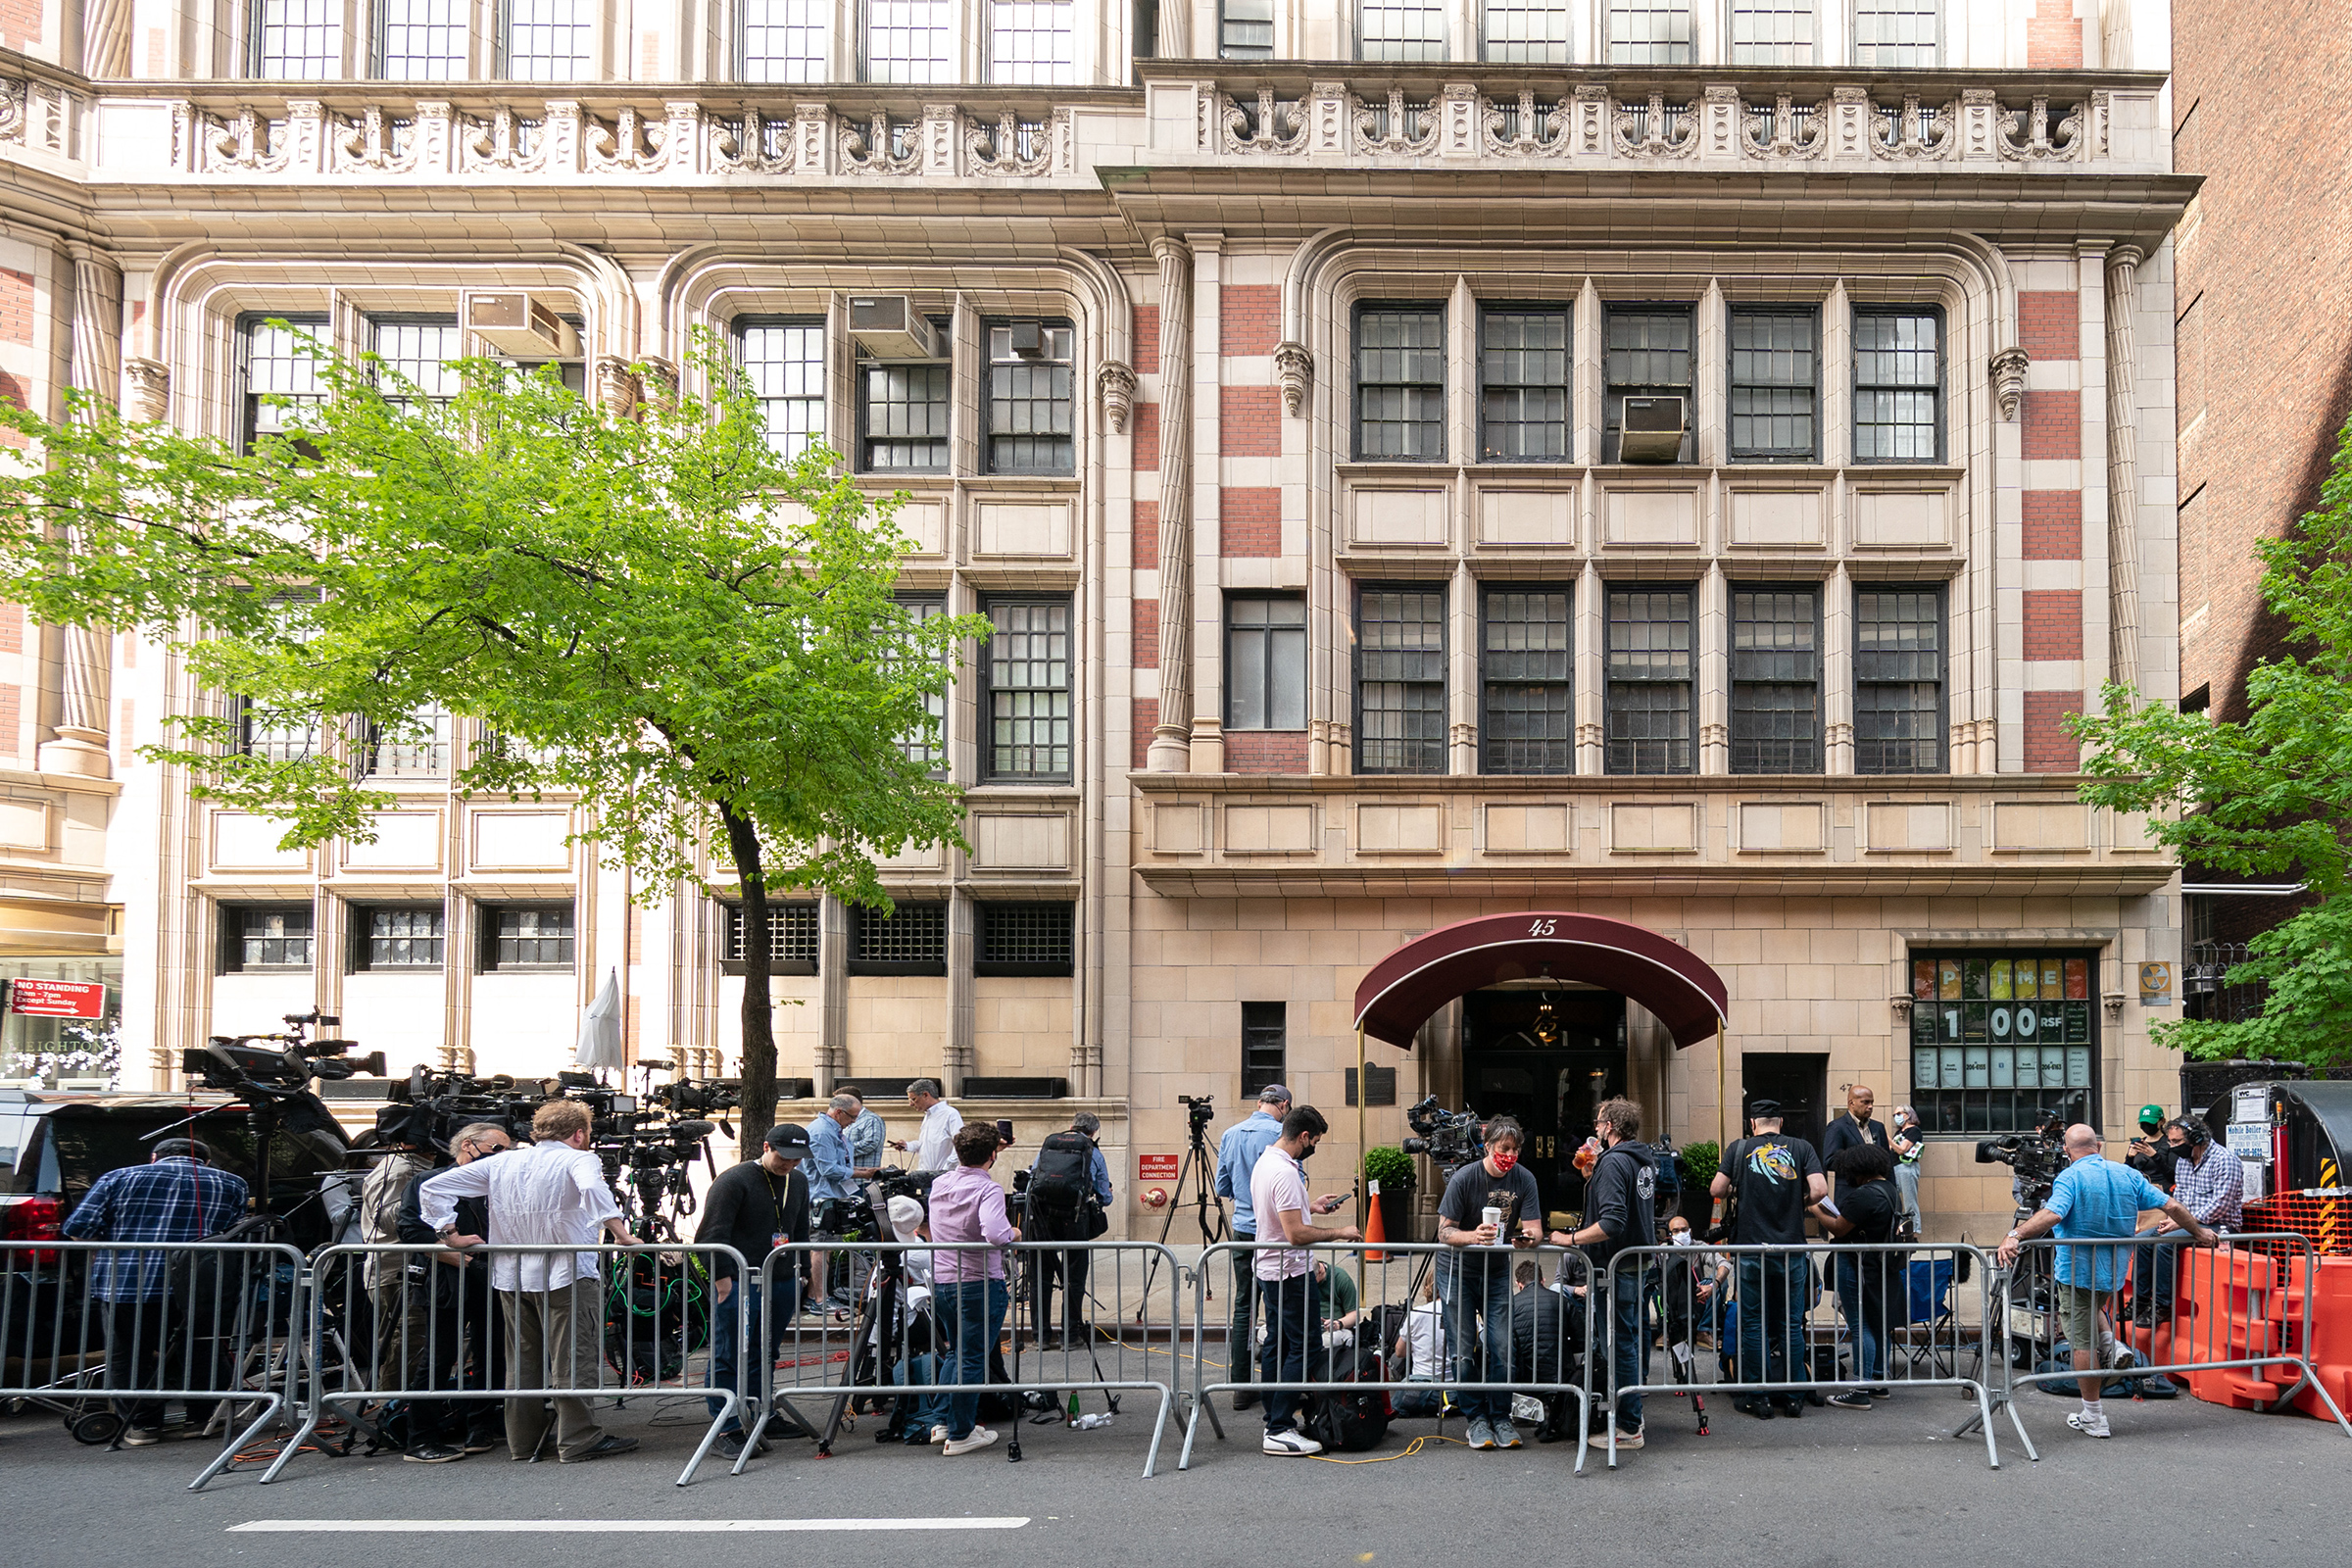 After the Giuliani raid, members of the media gathered outside the Manhattan building on April 28, 2021.